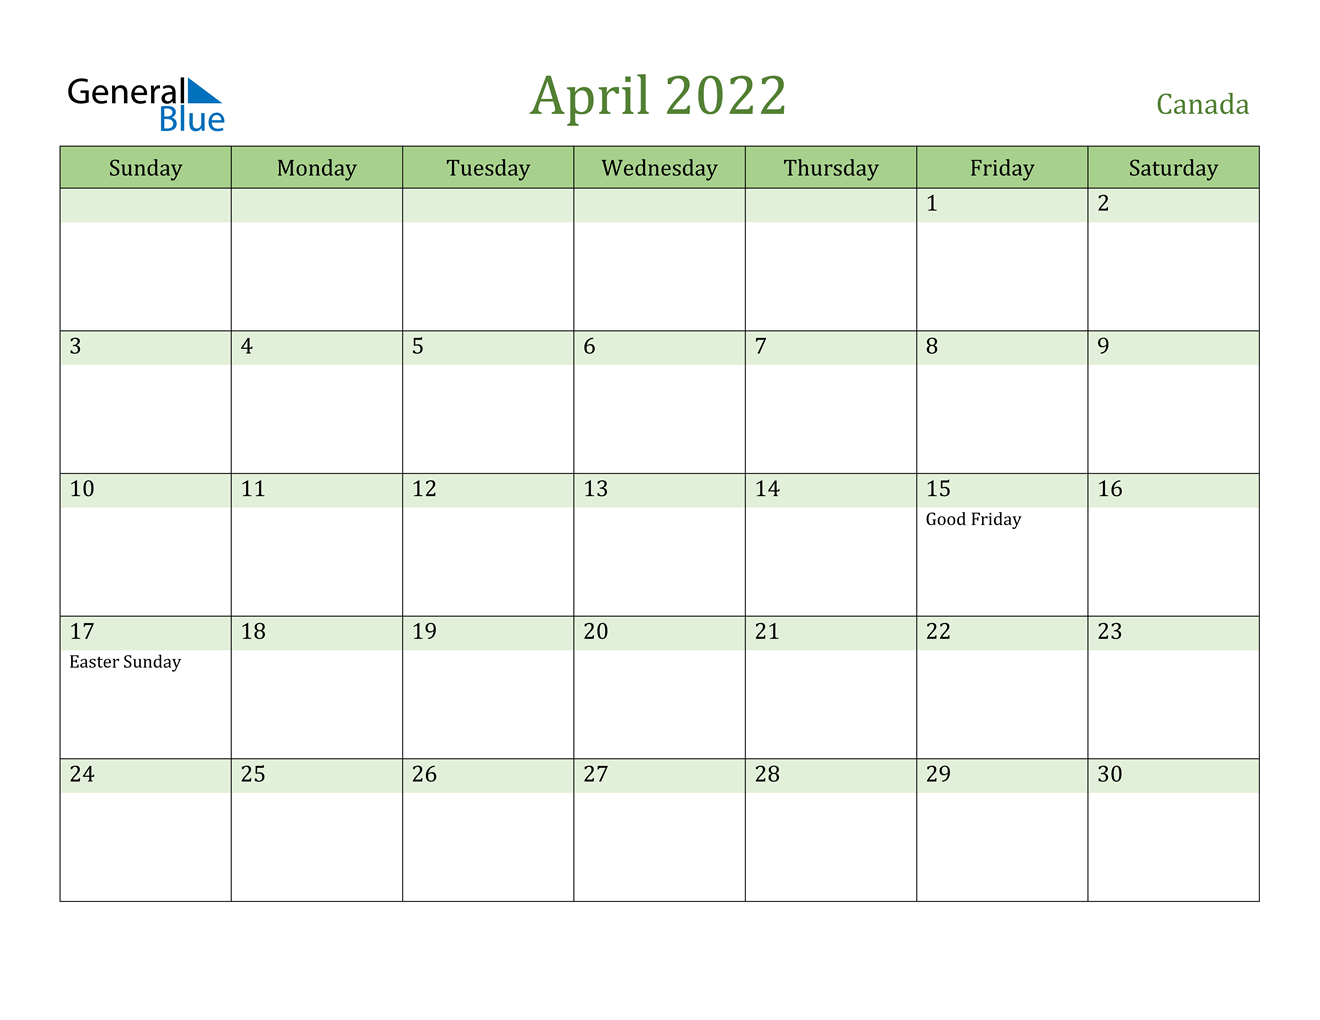 Get fast, free shipping with amazon prime. April 2022 Calendar - Canada